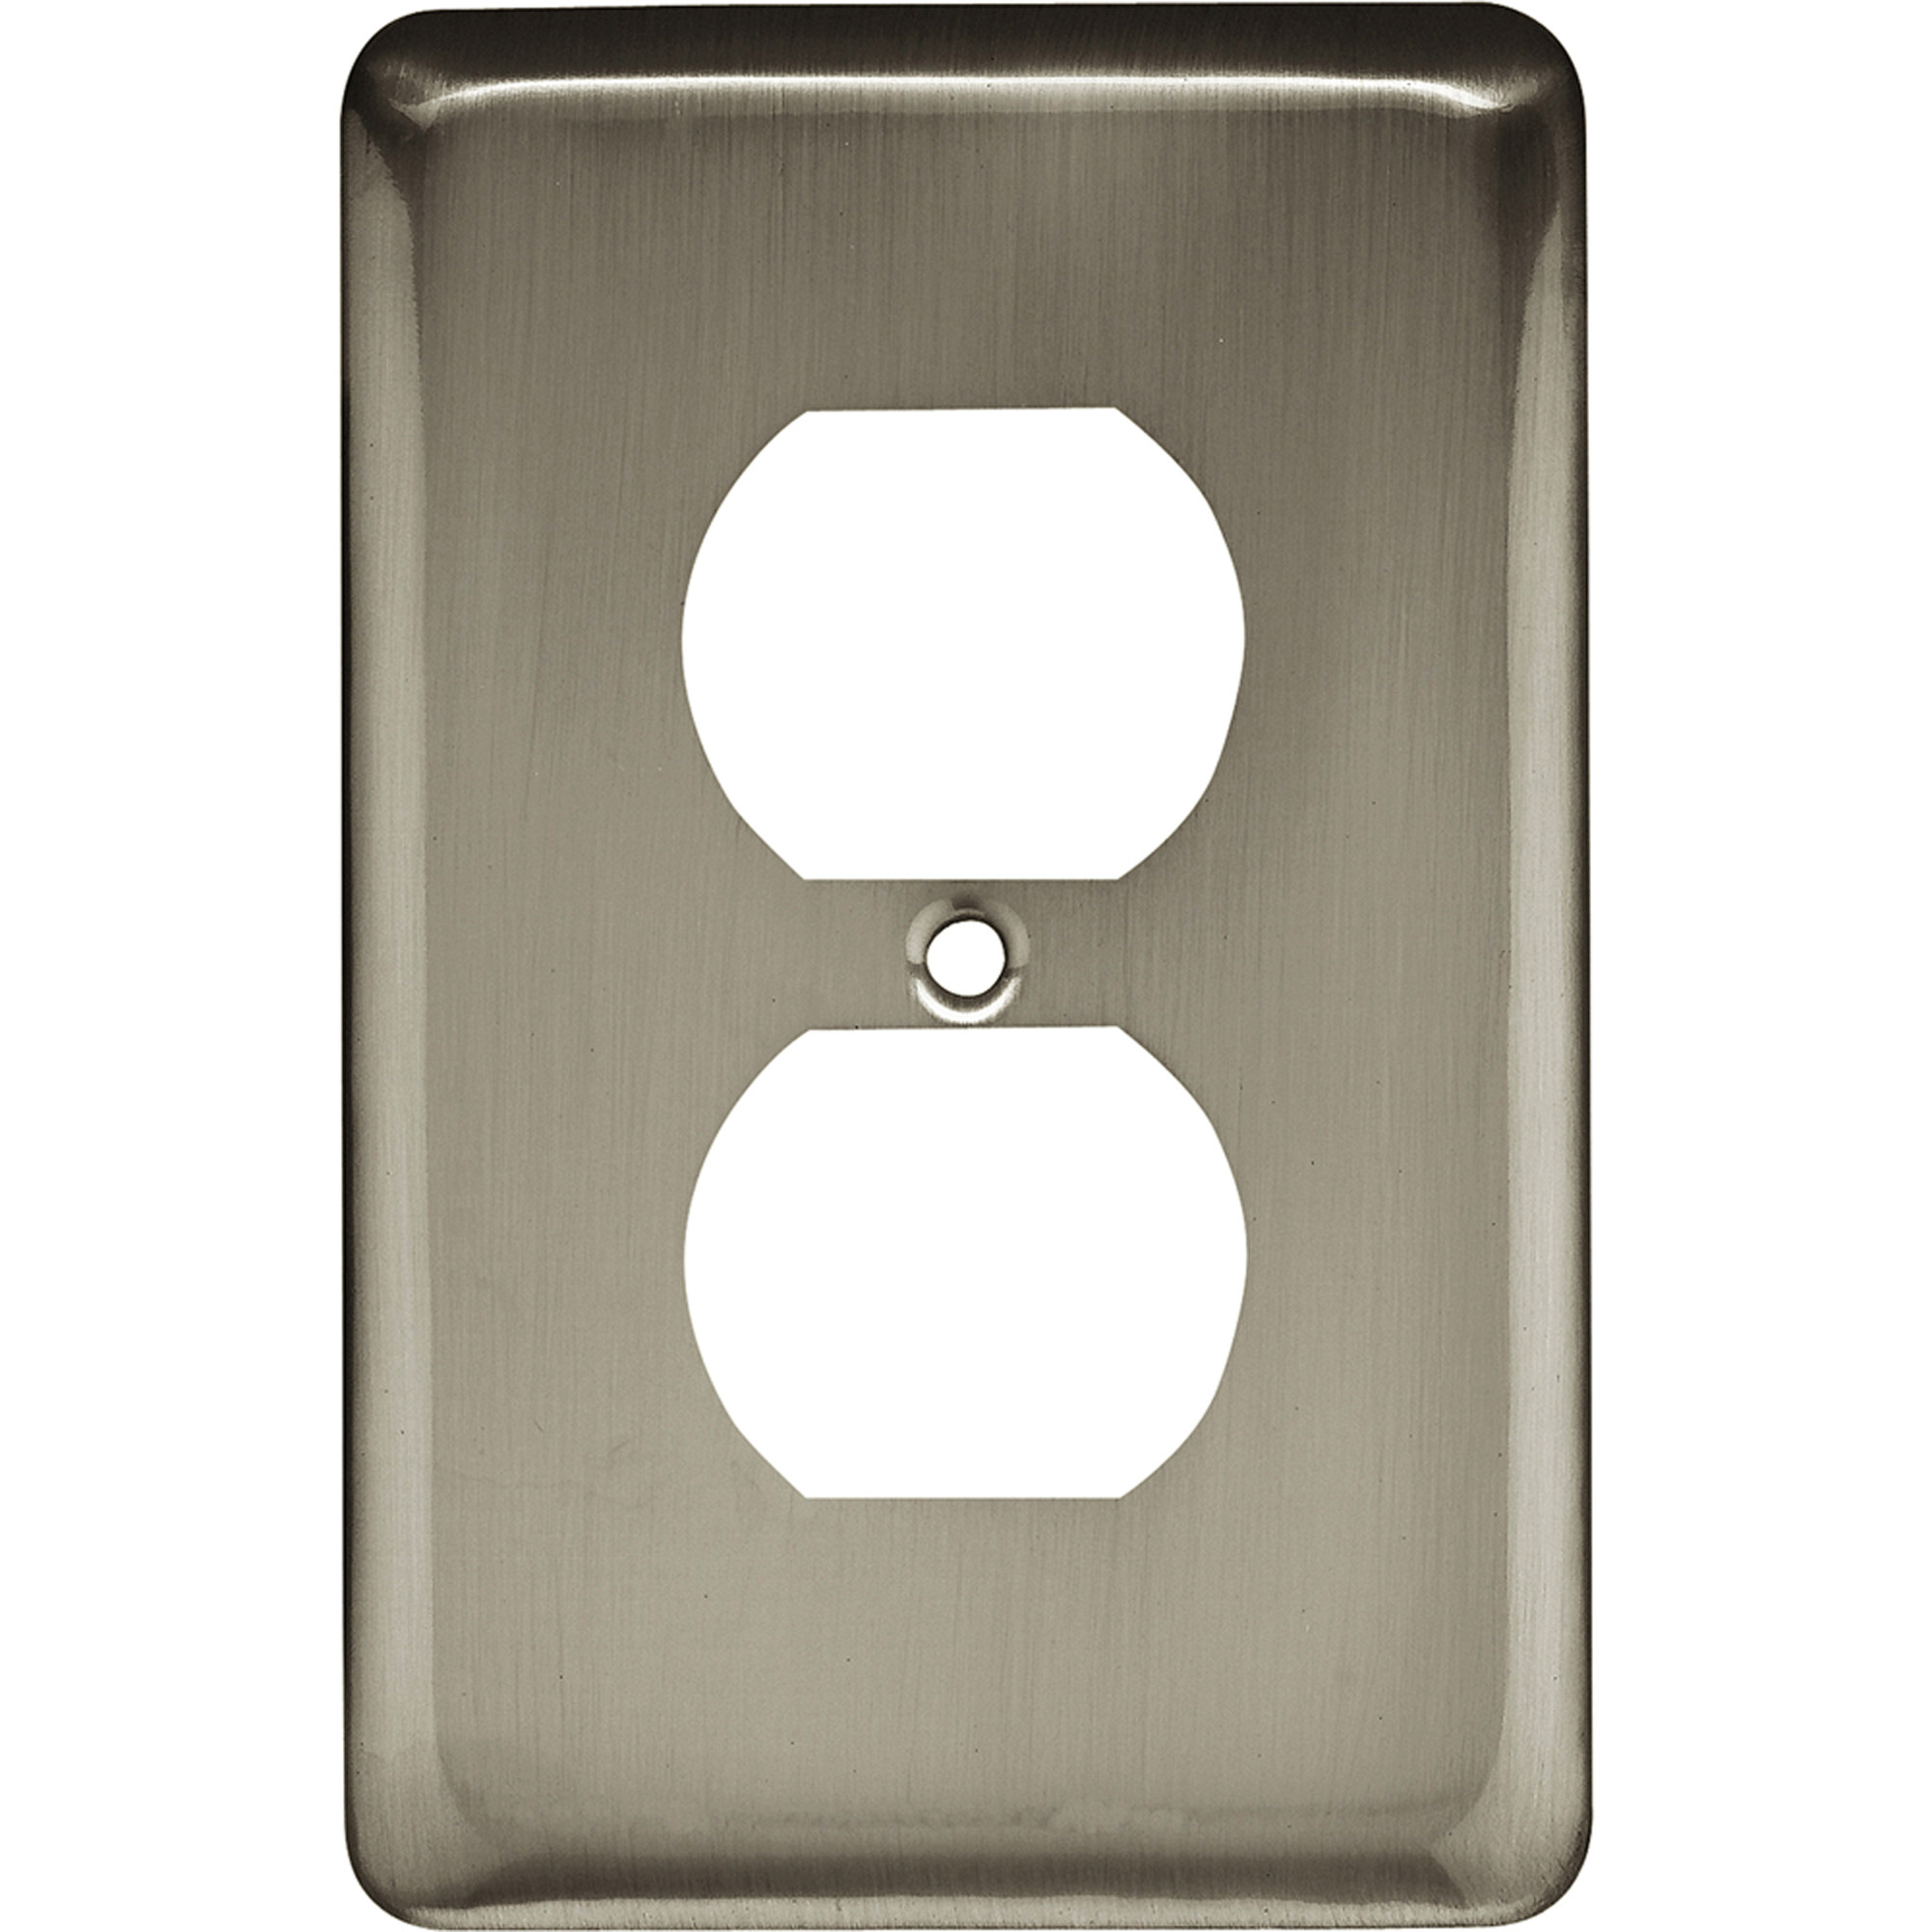 Brainerd Rounded Corner Single Duplex Wall Plate, Available in Multiple Colors by Brainerd